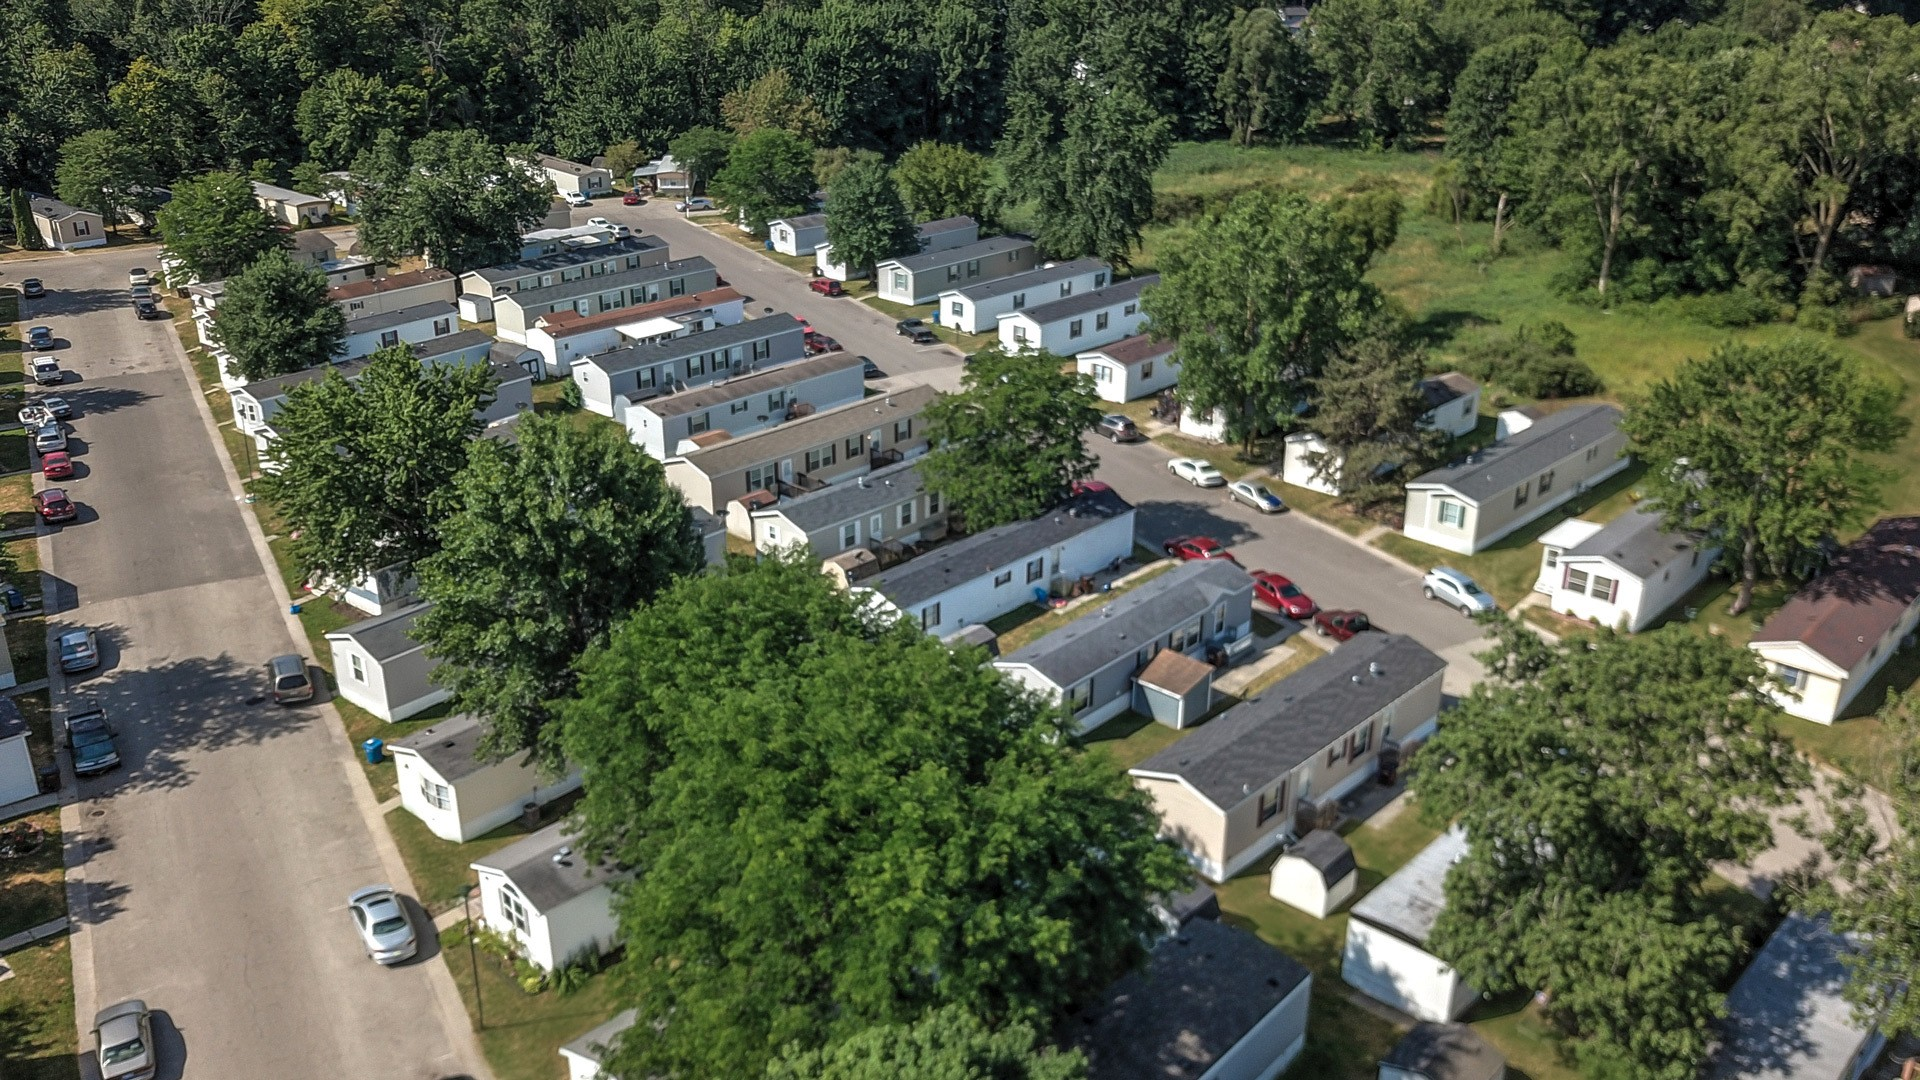 Byron Center Manufactured Homes Community Aerial View in Byron Center, MI